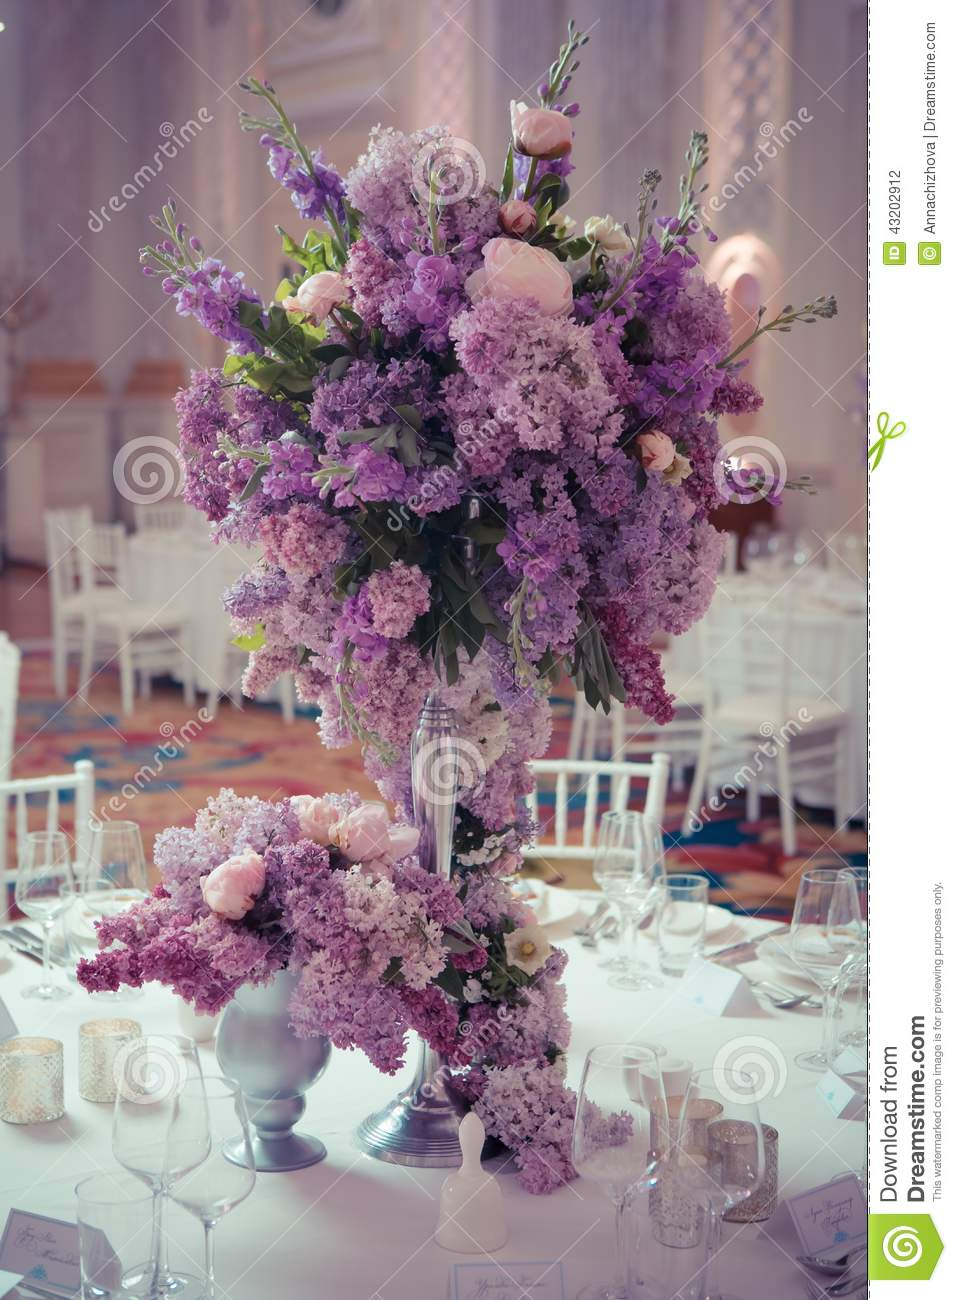 Lilac wedding decorations images for Best decoration ideas